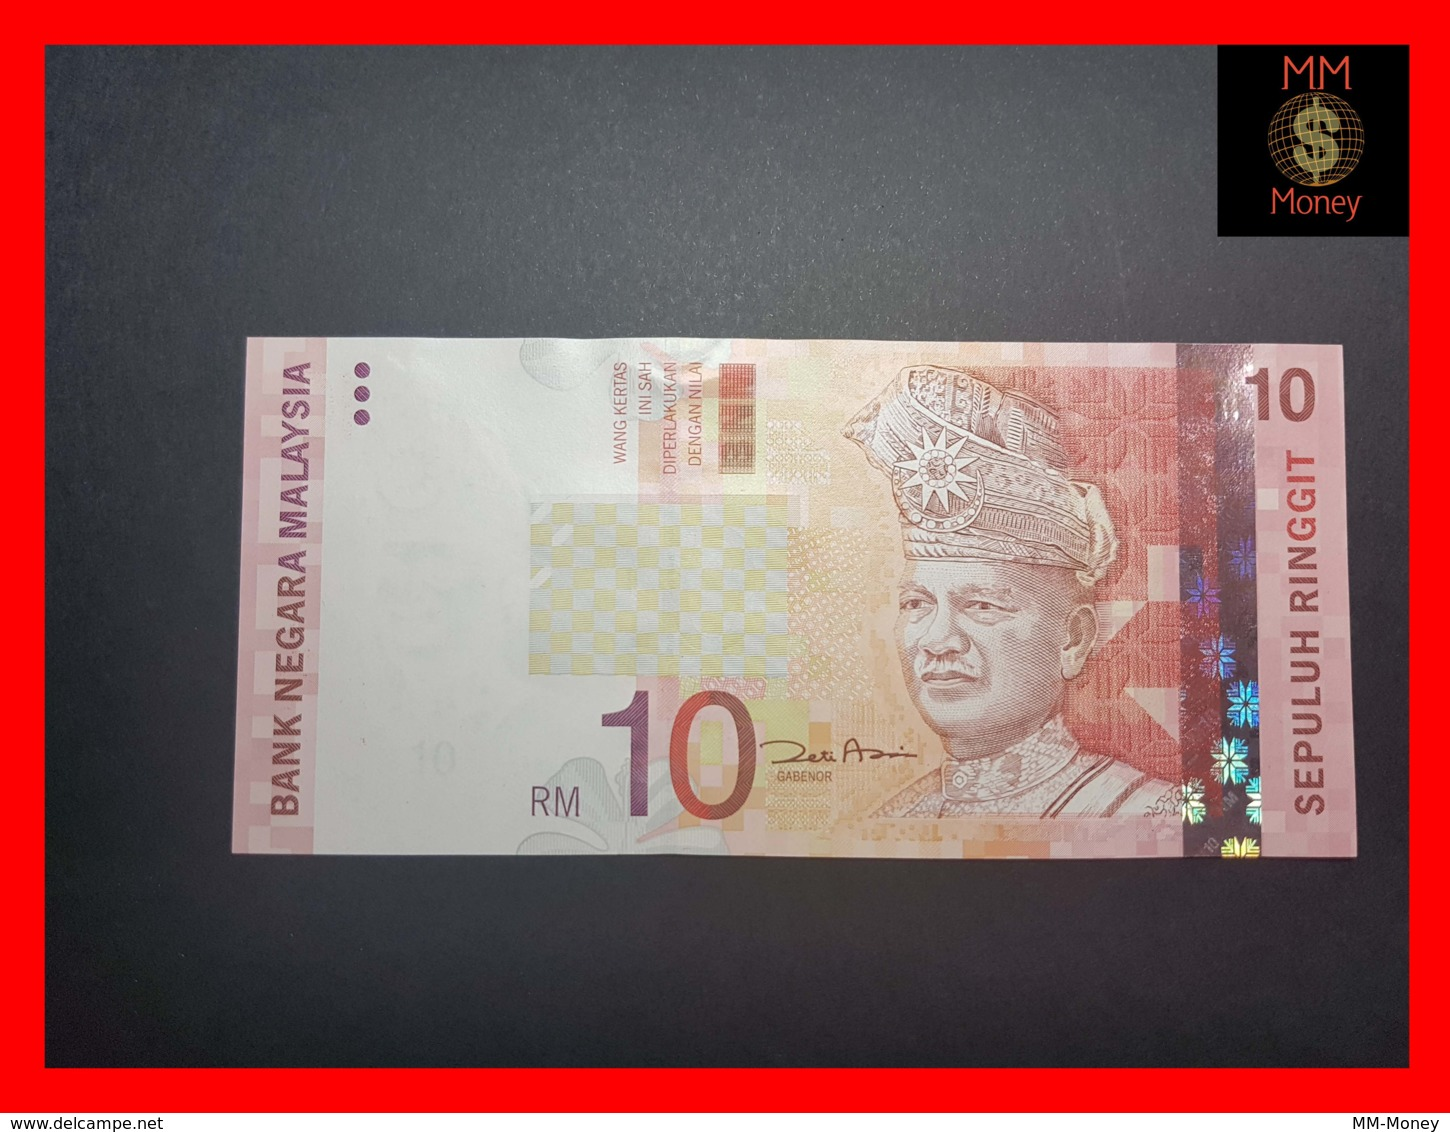 2004 UNC Polymer Banknote Malaysia 5 Ringgit p-47 1